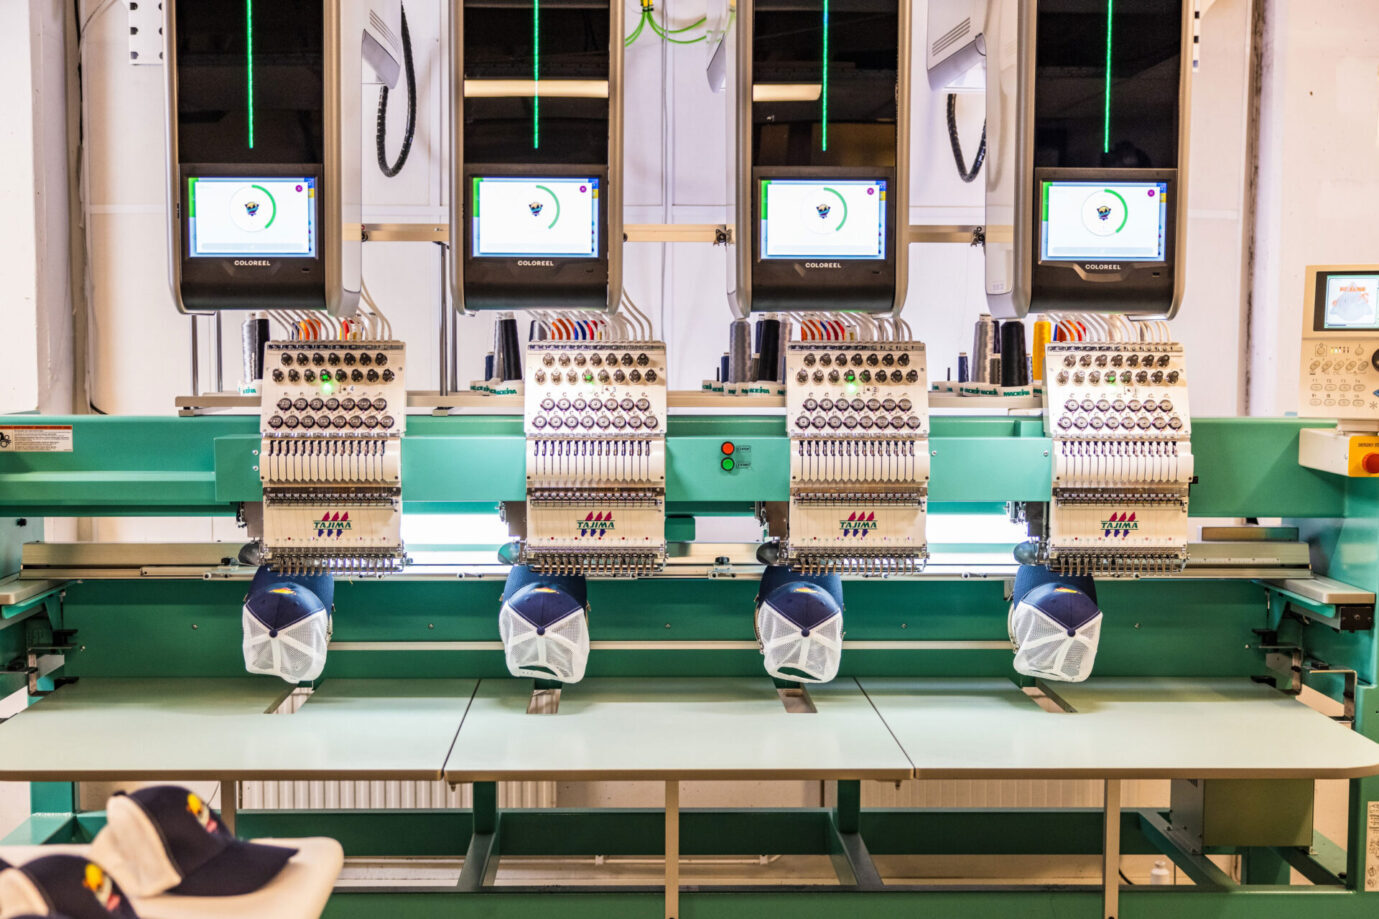 Coloreel textile technology brand secures sek 70 million in private placement